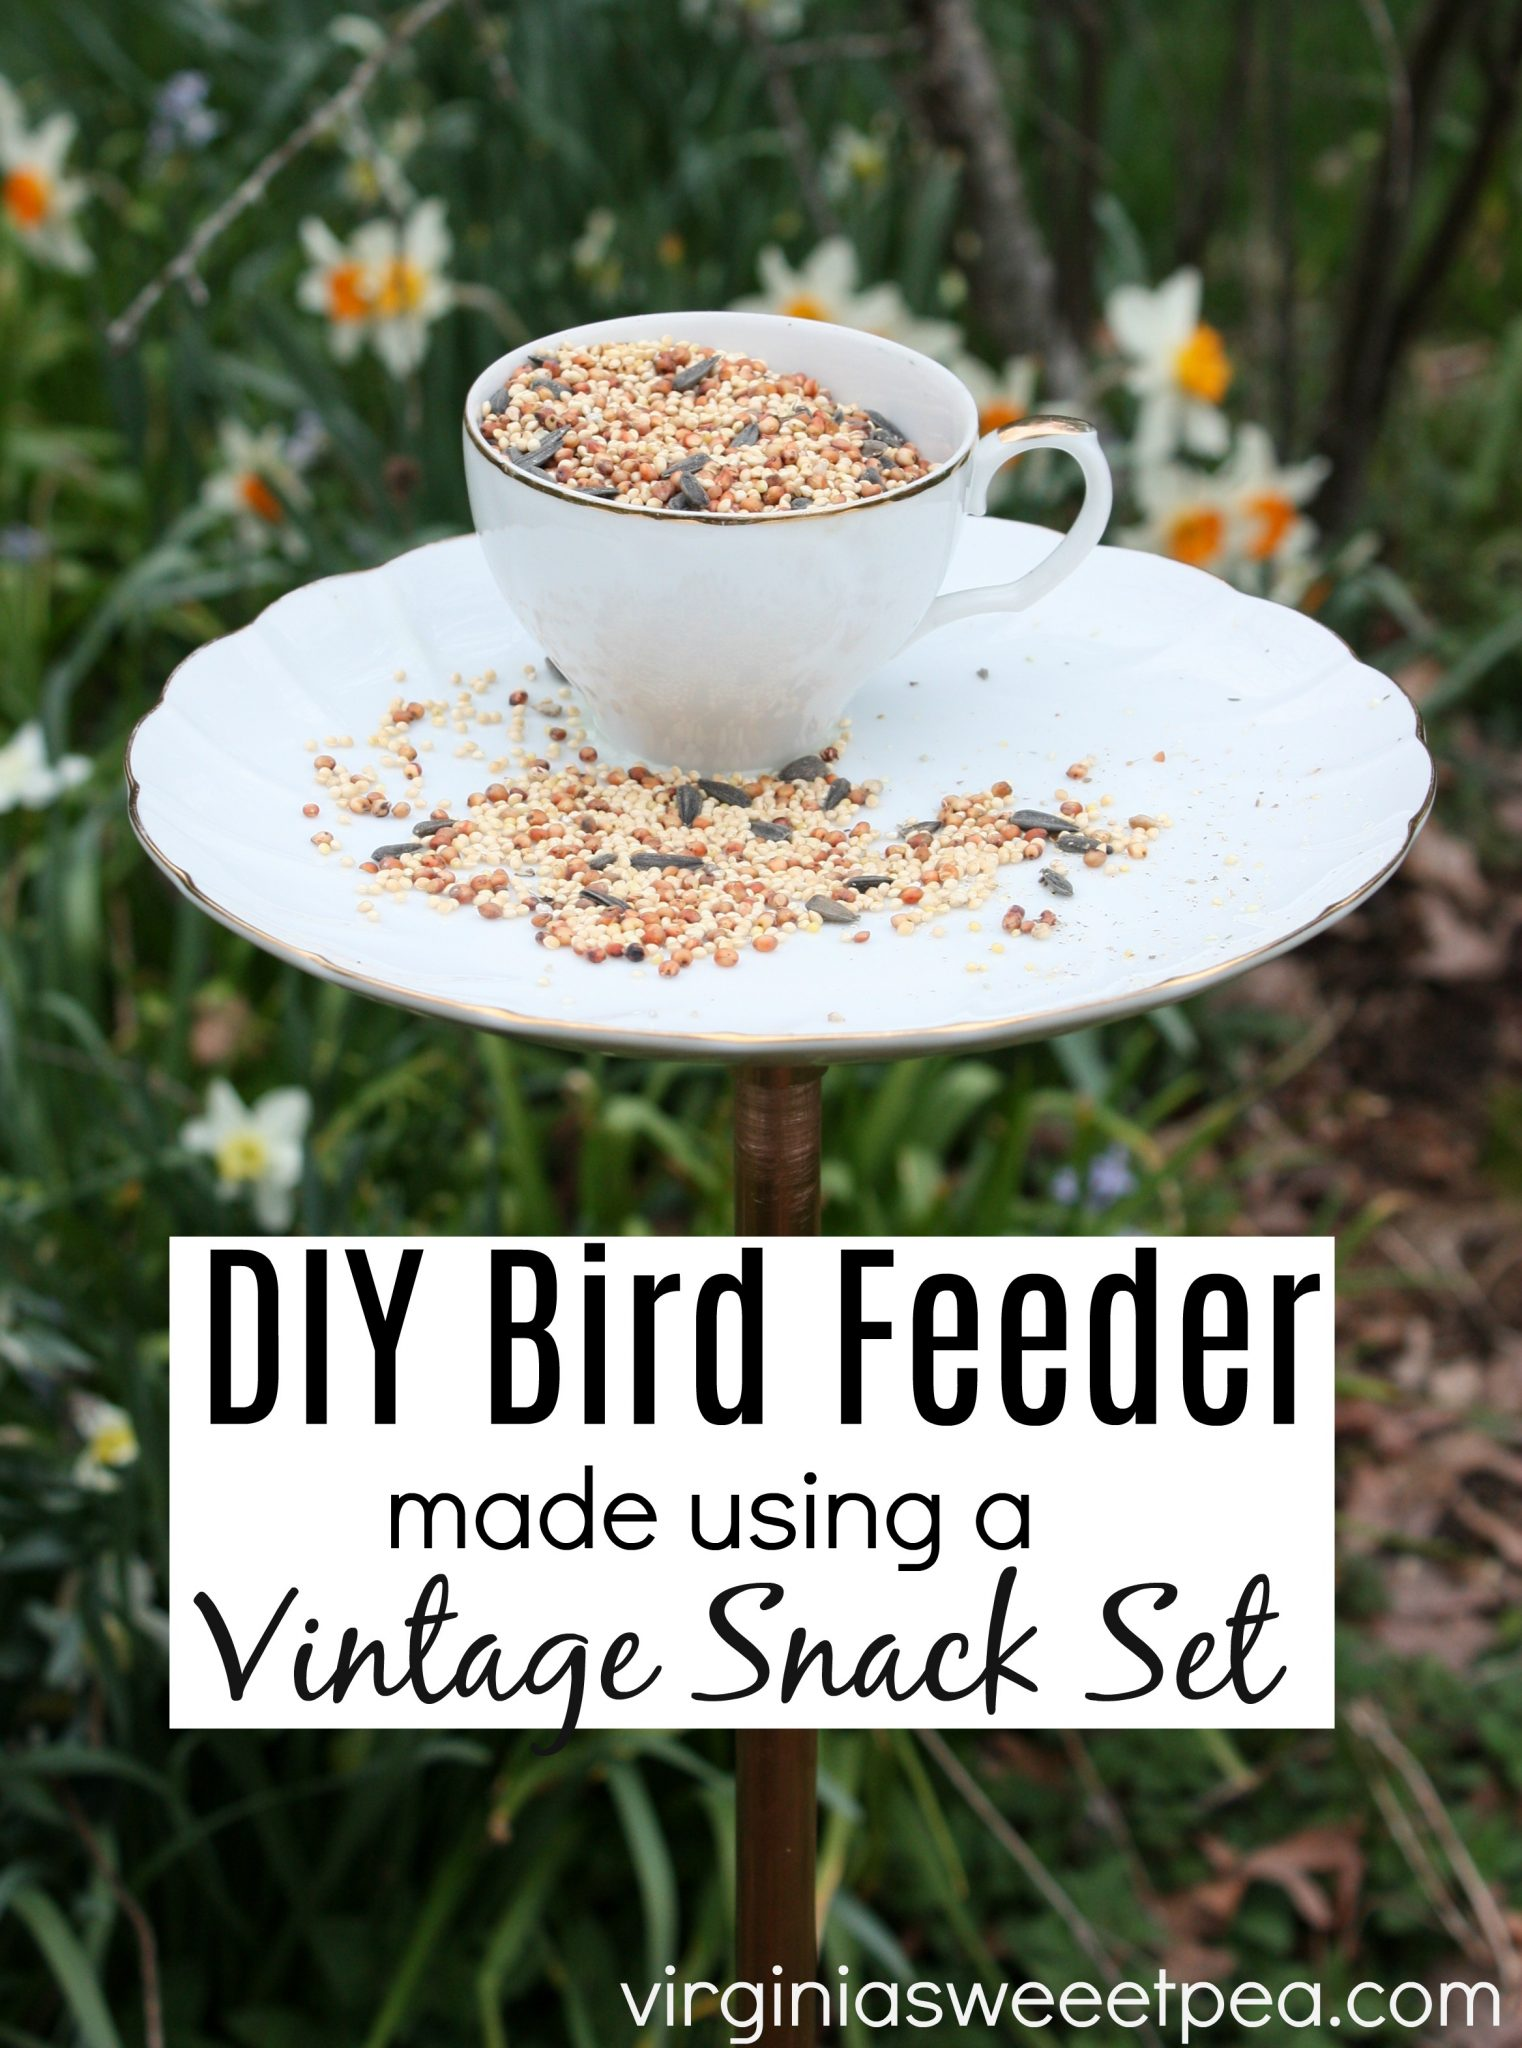 DIY Bird Feeder Made Using a Vintage Snack Set - Thrift shops frequently have vintage snack sets available. Learn how to use one to make a bird feeder for your yard or flower bed. #diybirdfeeder #birdfeeder #vintagesnackplate #virginiasweetpea